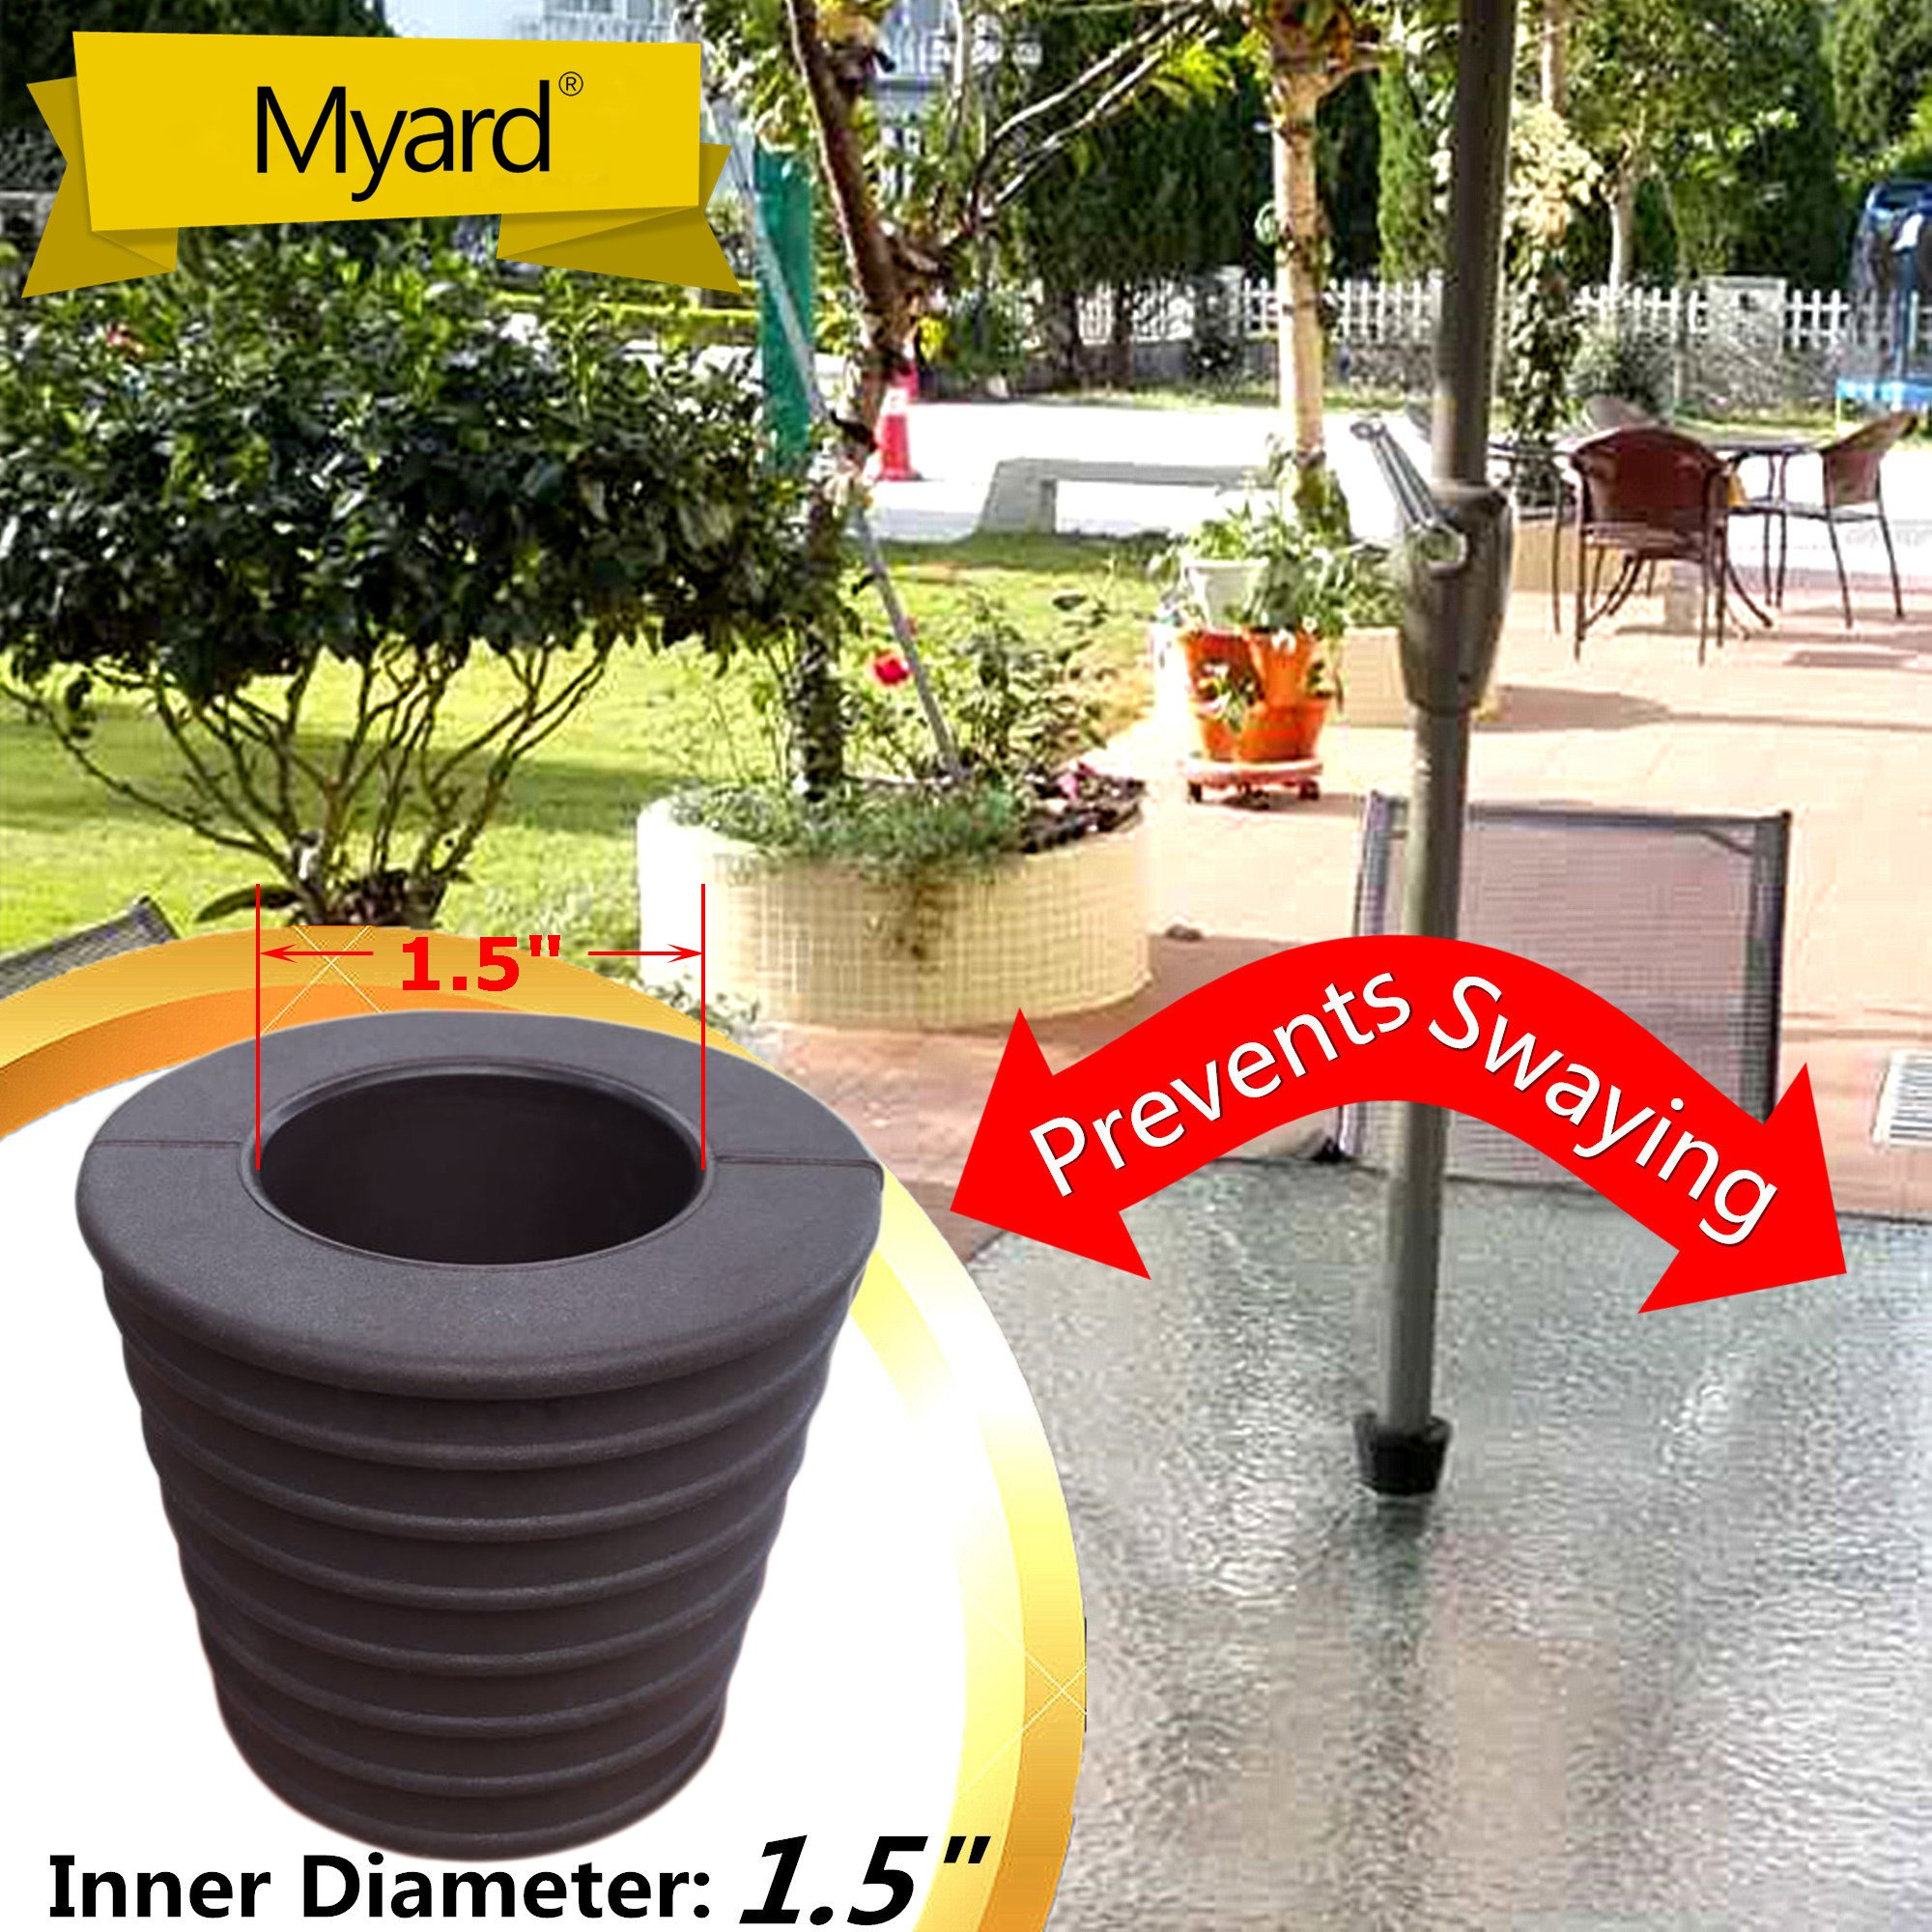 "MYARD Umbrella Cone Wedge fits Patio Table Hole Opening or base 2 to 2.5 Inch, & Pole Diameter 1 1/2"" (38mm, Dark Brown)"